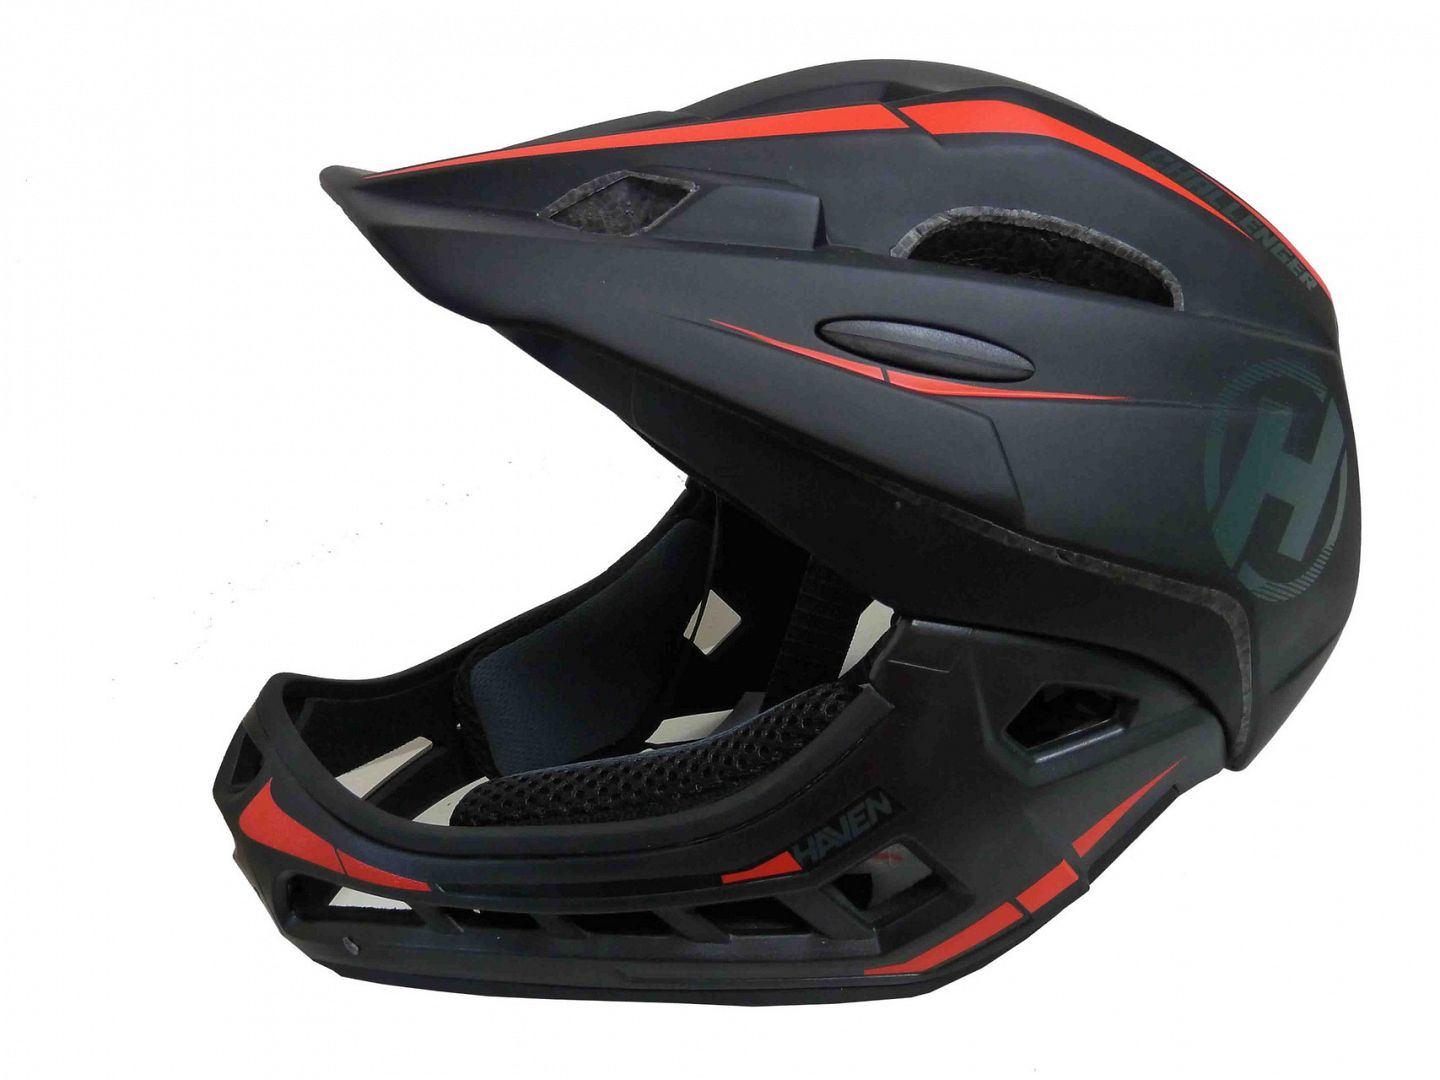 Přilba HAVEN CHALLENGER black/red, vel. XS